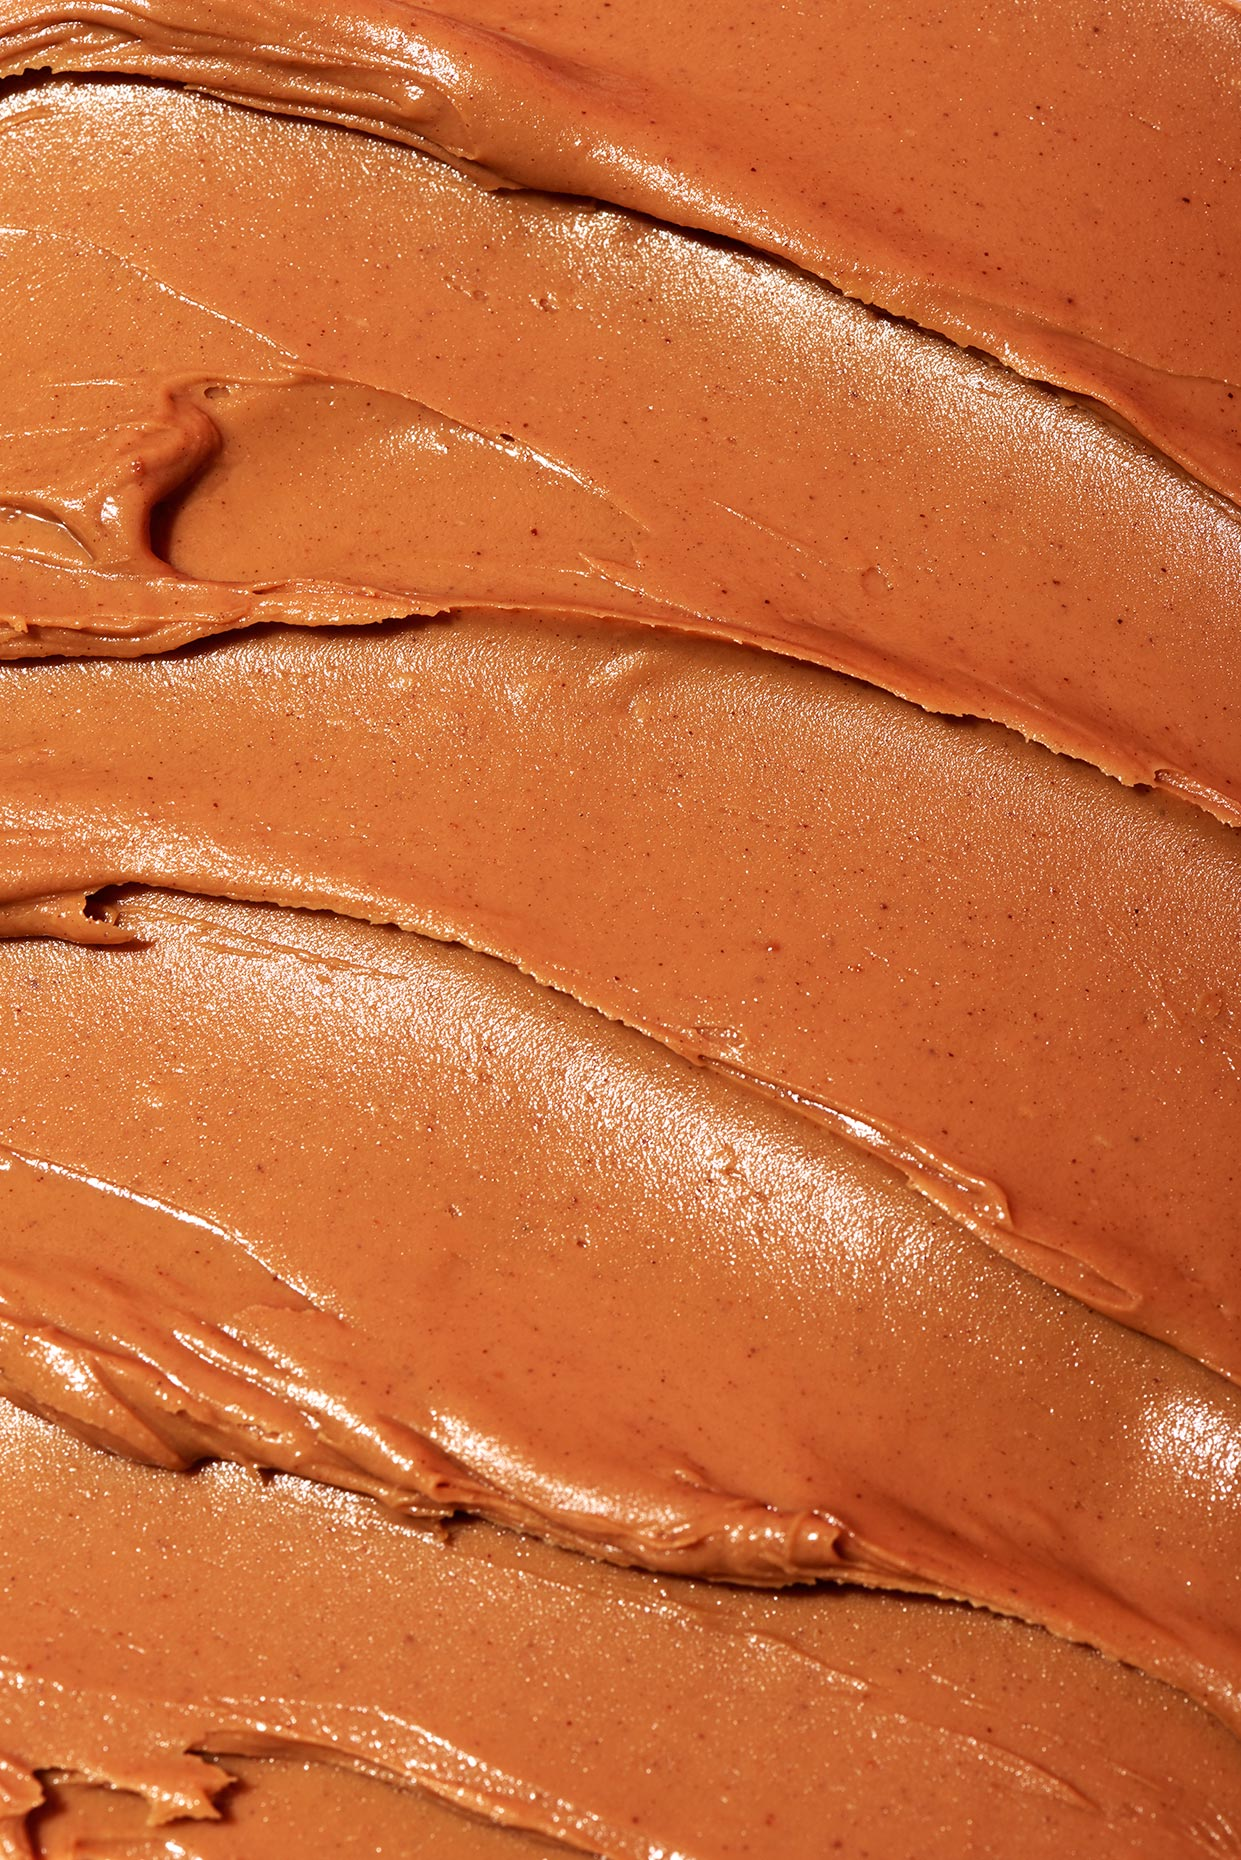 Spread out Peanut butter, photographed by New York Food Photographer Adrian Mueller